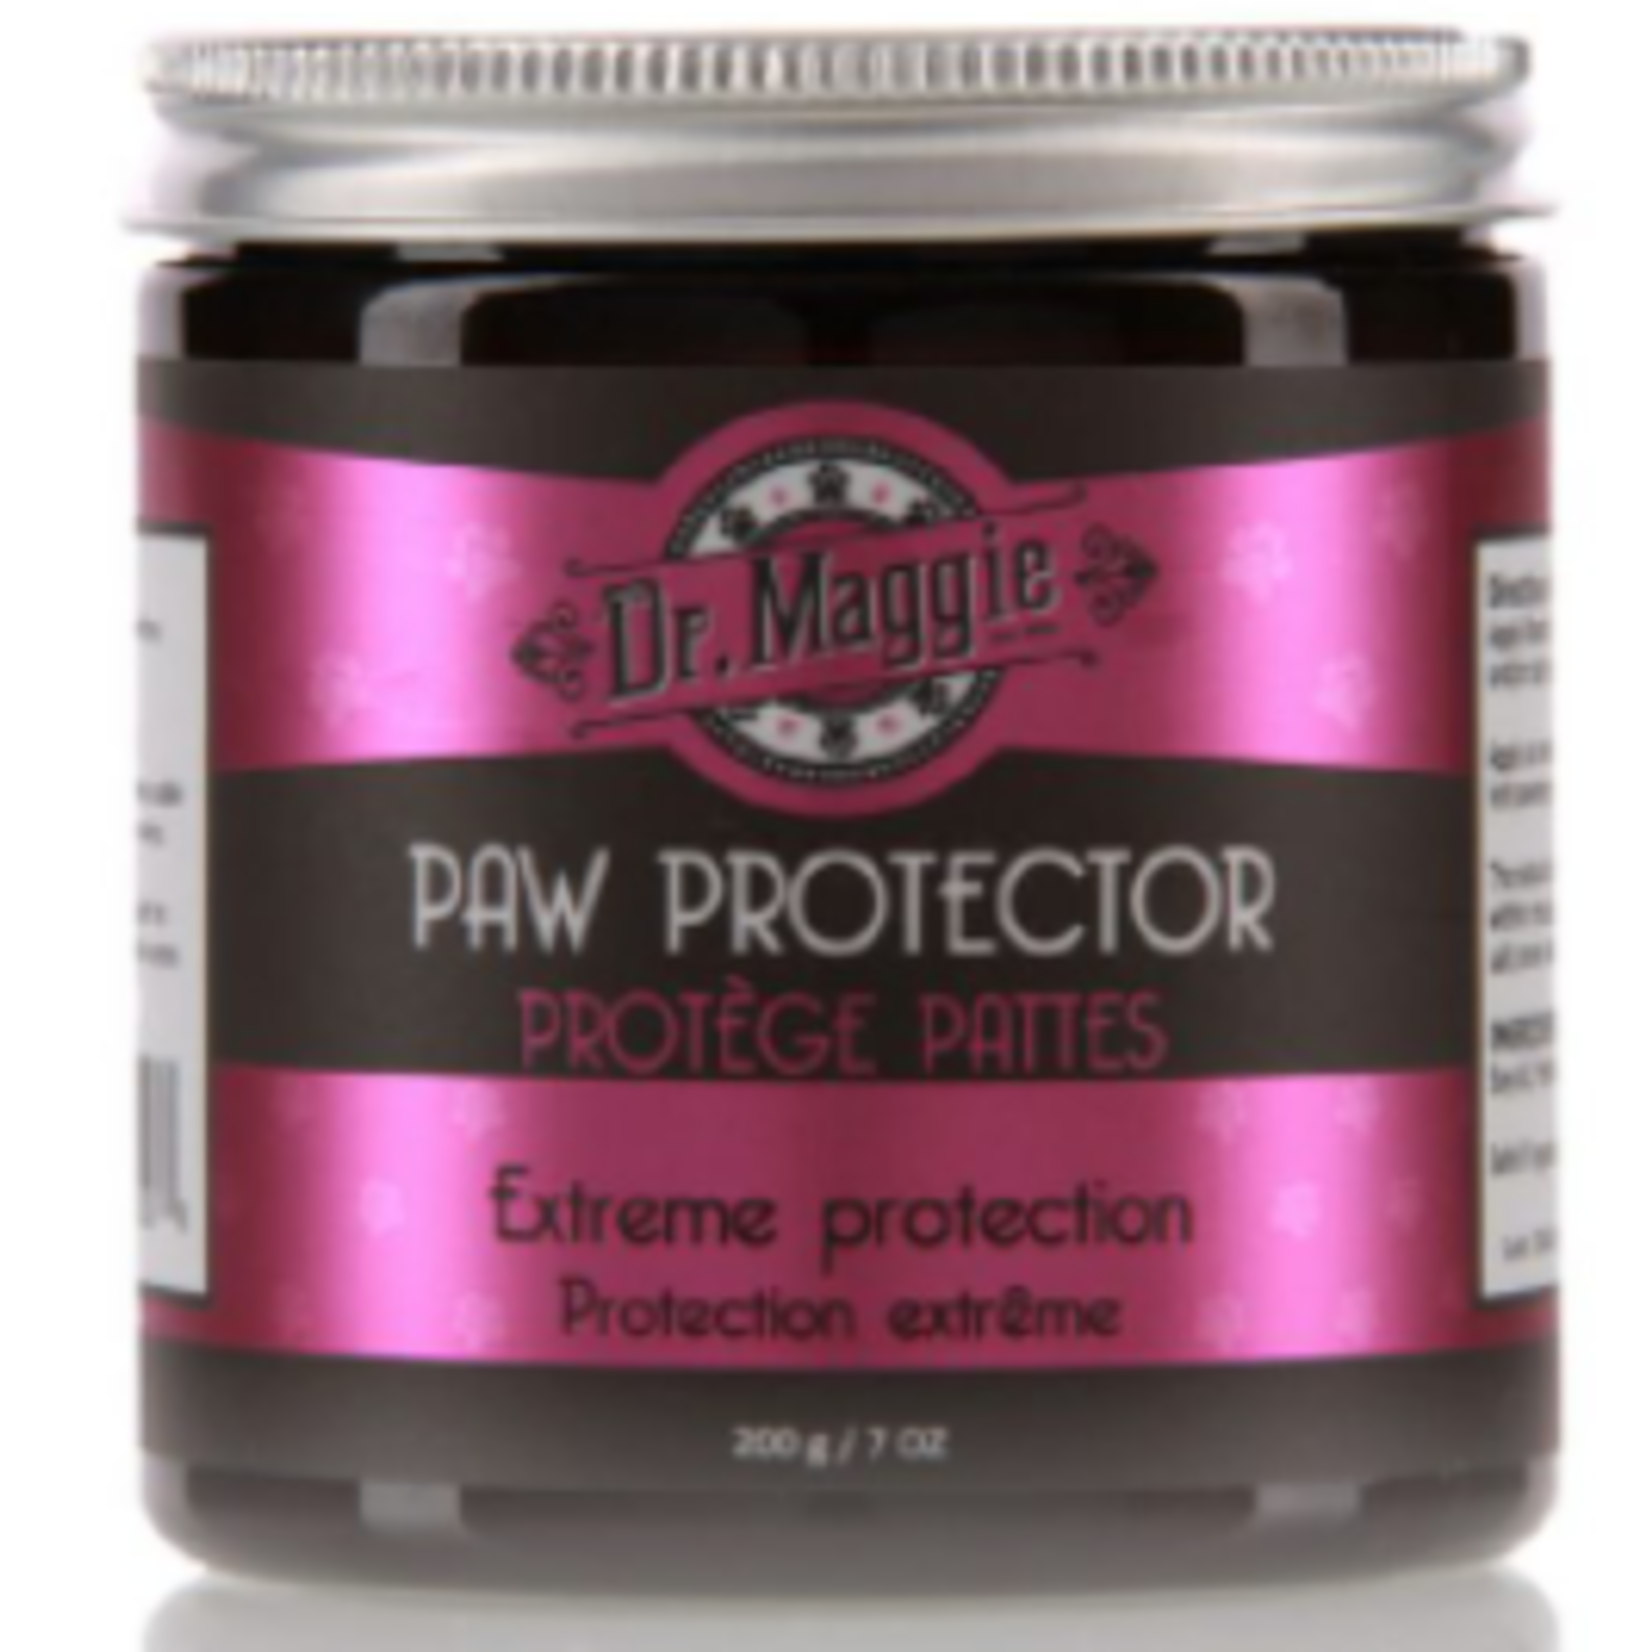 NaturPet Paw Protector-100g-Dogs and Cats–An Alternative to Dog Boots